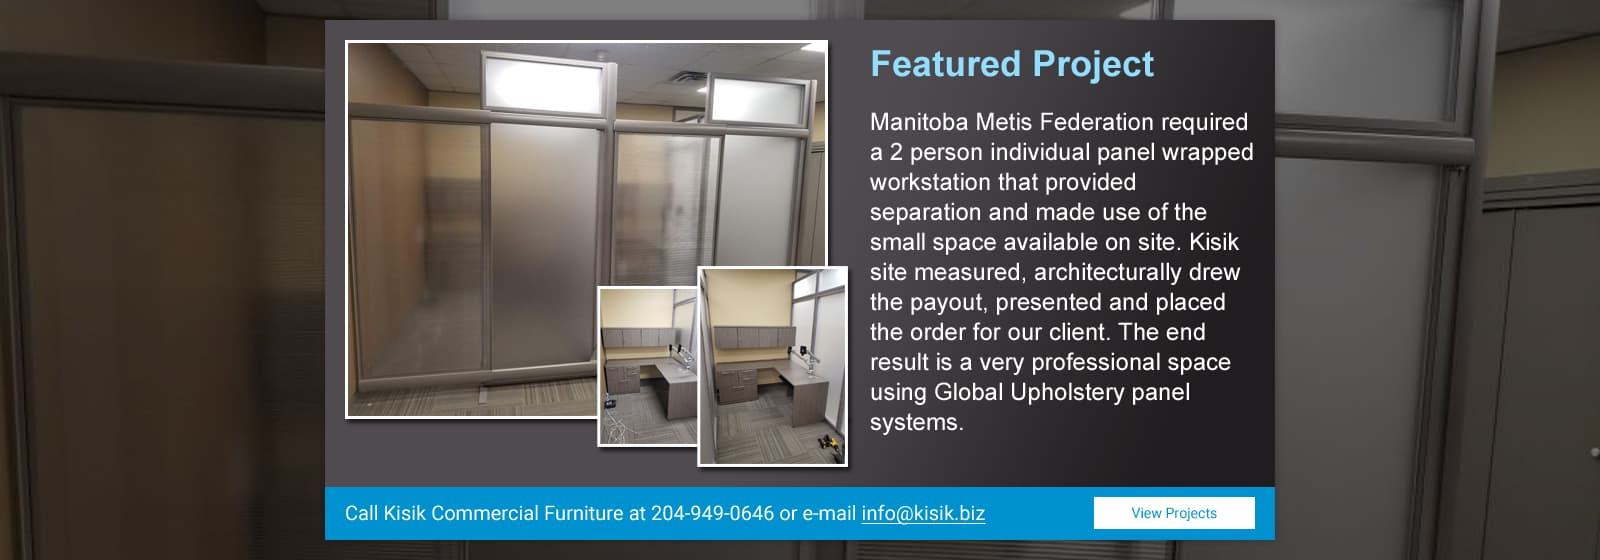 Featured Project - Manitoba Metis Federation